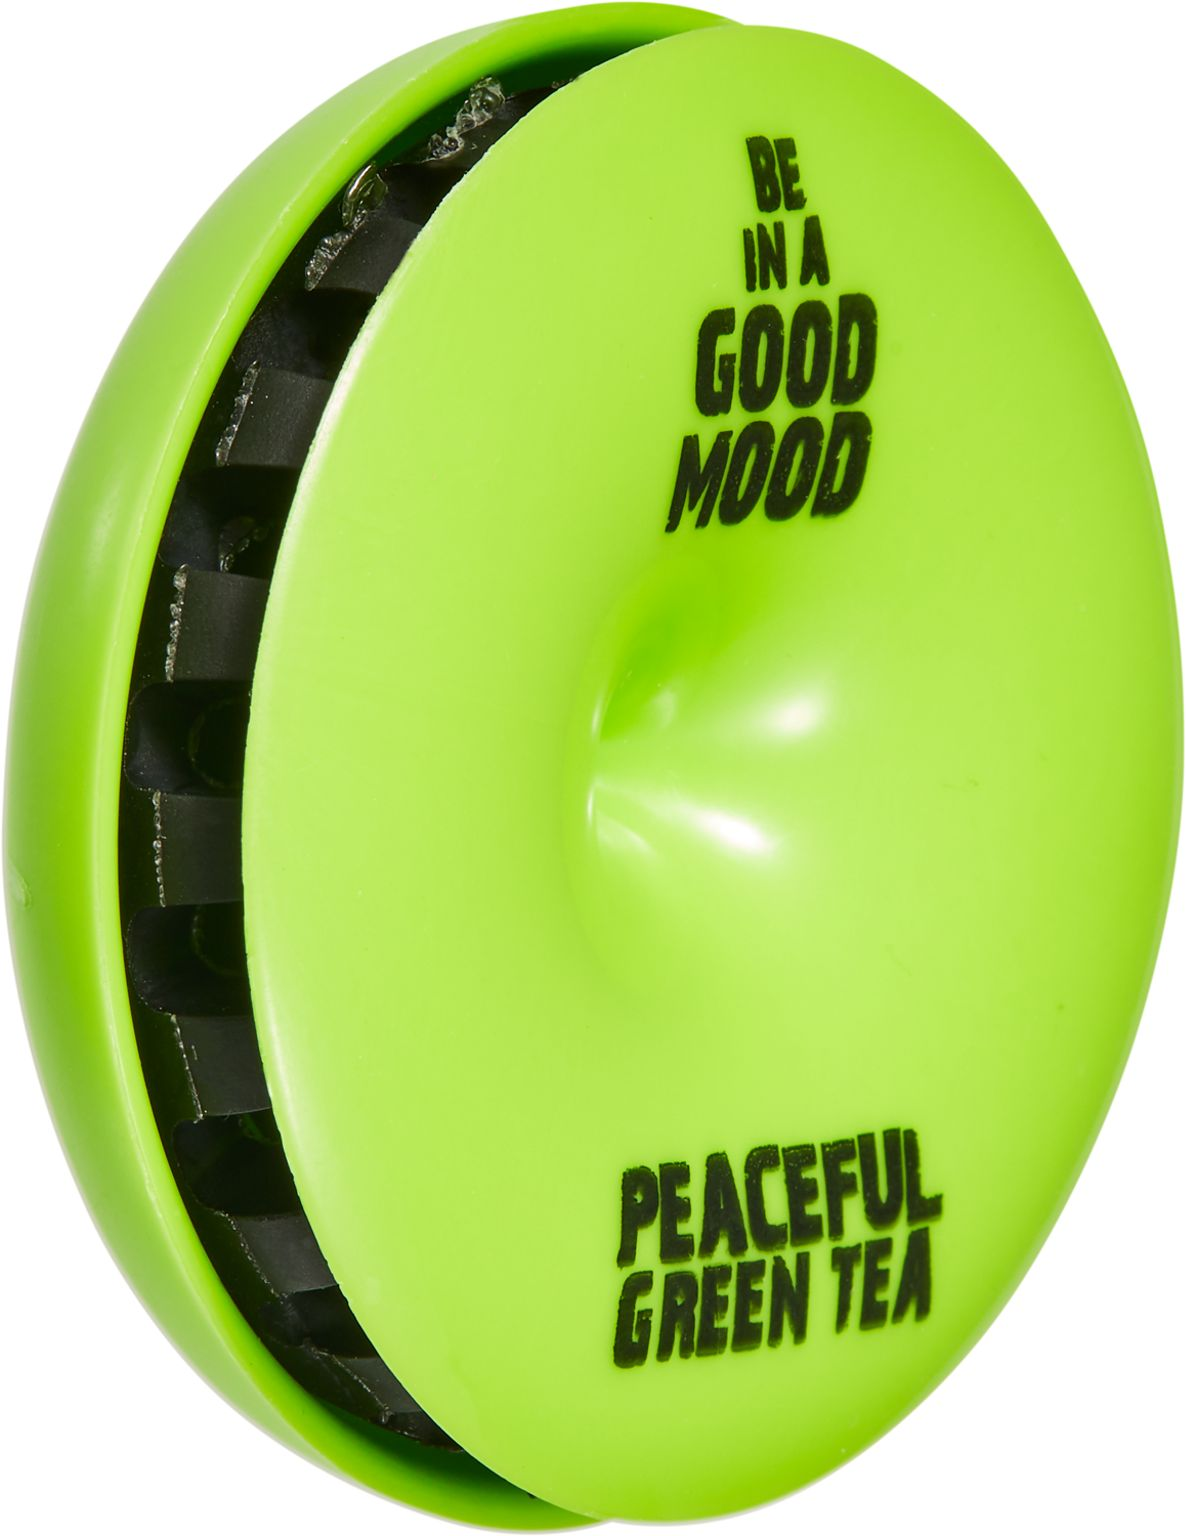 Image of BE IN A GOOD MOOD Autoduft Green Tea